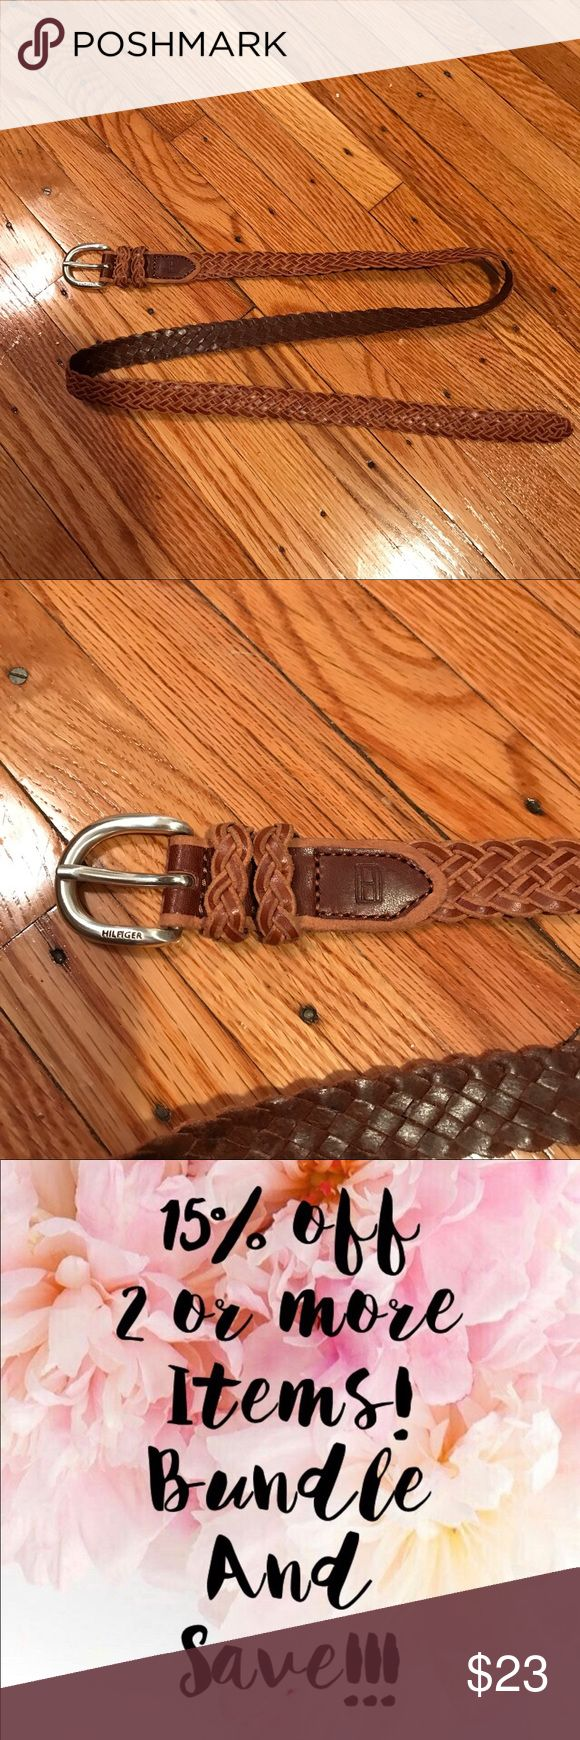 """NWOT Tommy Hilfiger braided leather belt Brand new braided leather belt/braided loops   Color: tan leather  Width: 7/8""""  Size: medium                                           Comes from pet free/smoke free environment. Check out my other items! ✨Bundle to save ✨ Tommy Hilfiger Accessories Belts"""